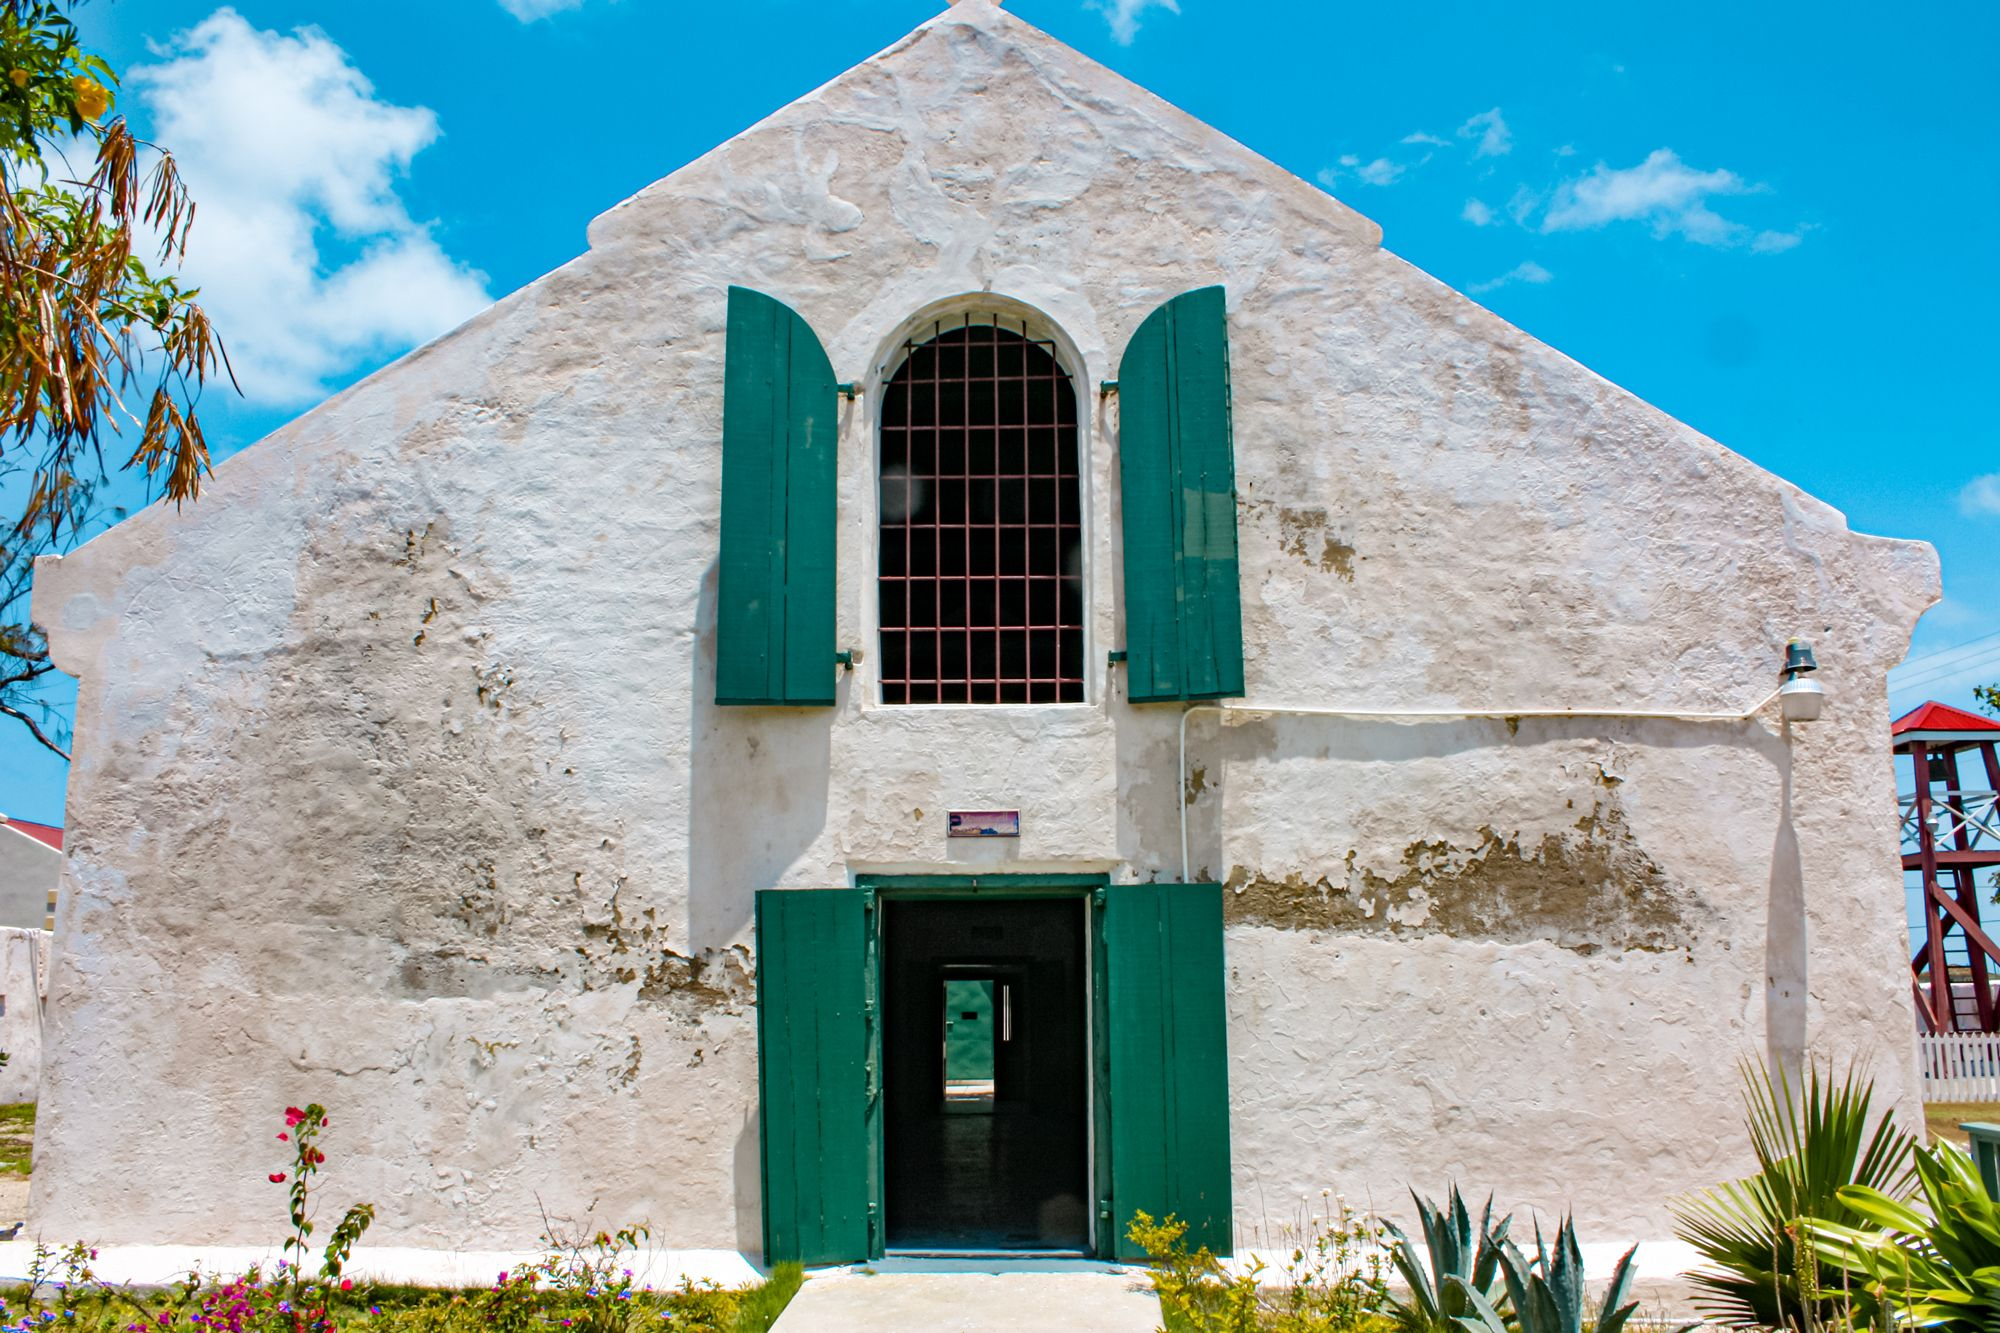 Her Majestys Prison Turks Caicos